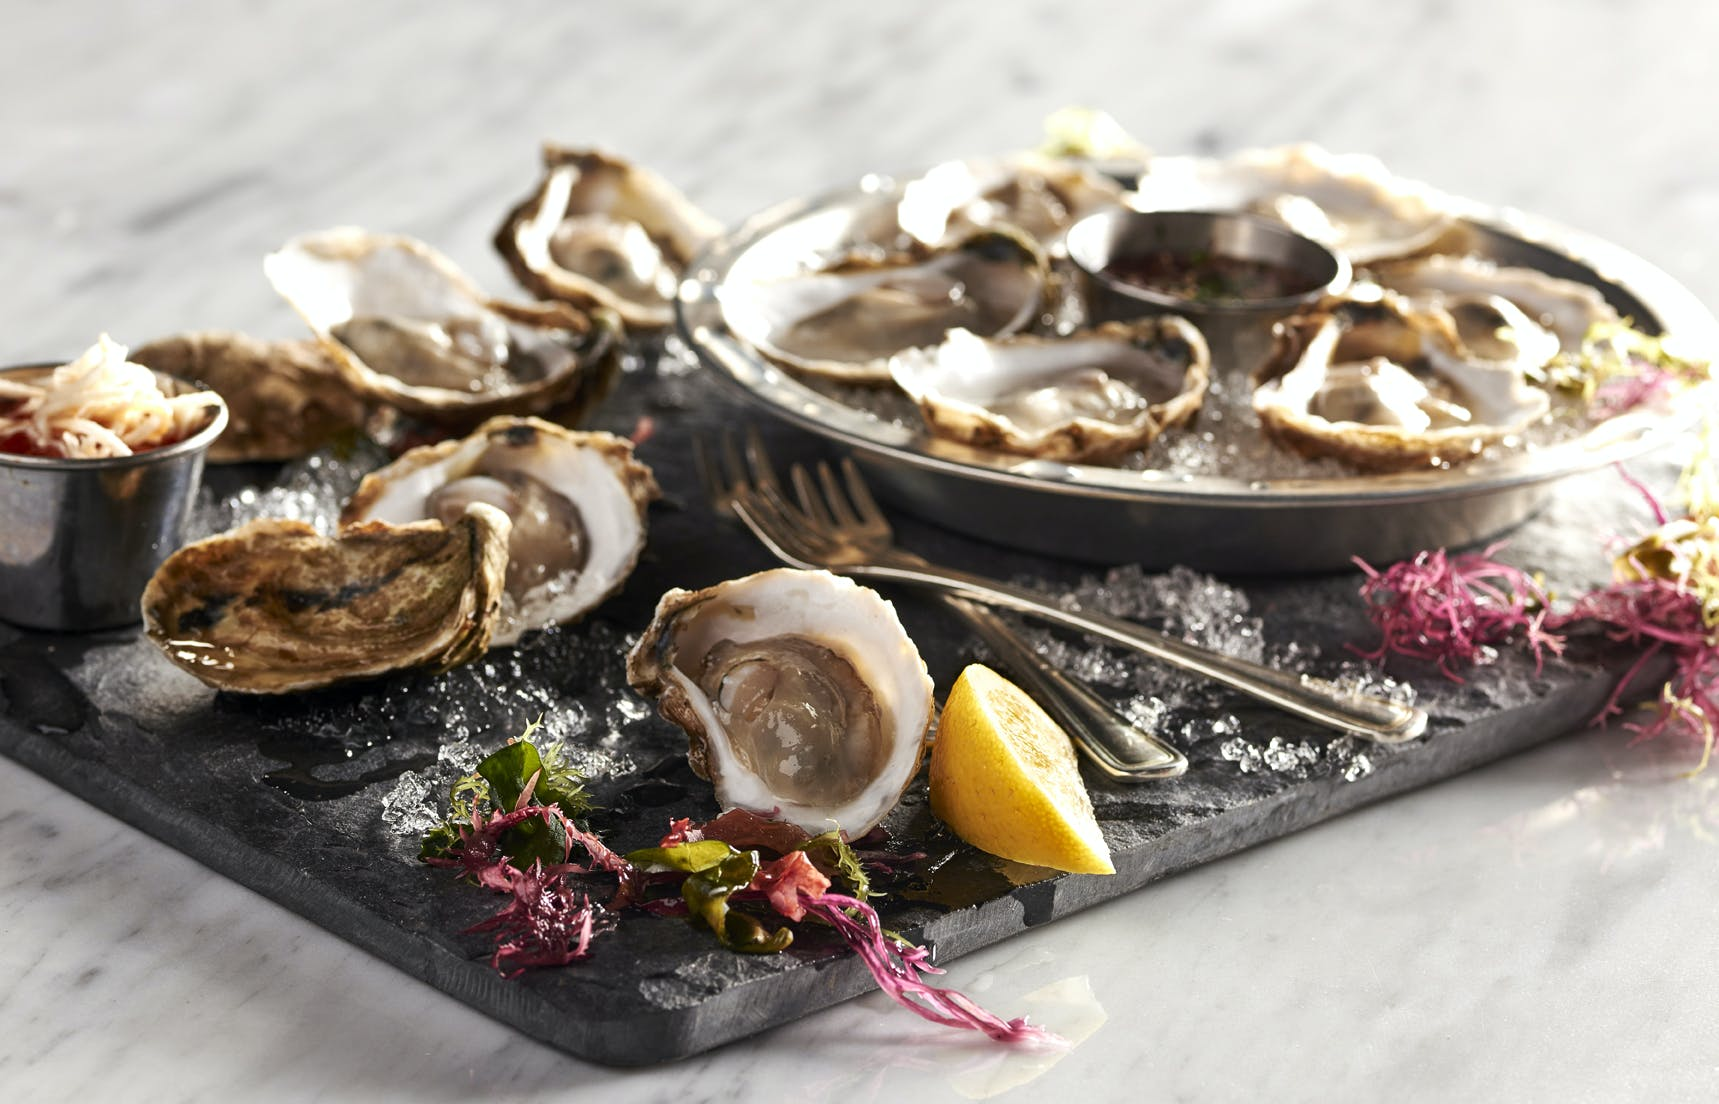 a close up of a plate of oysters